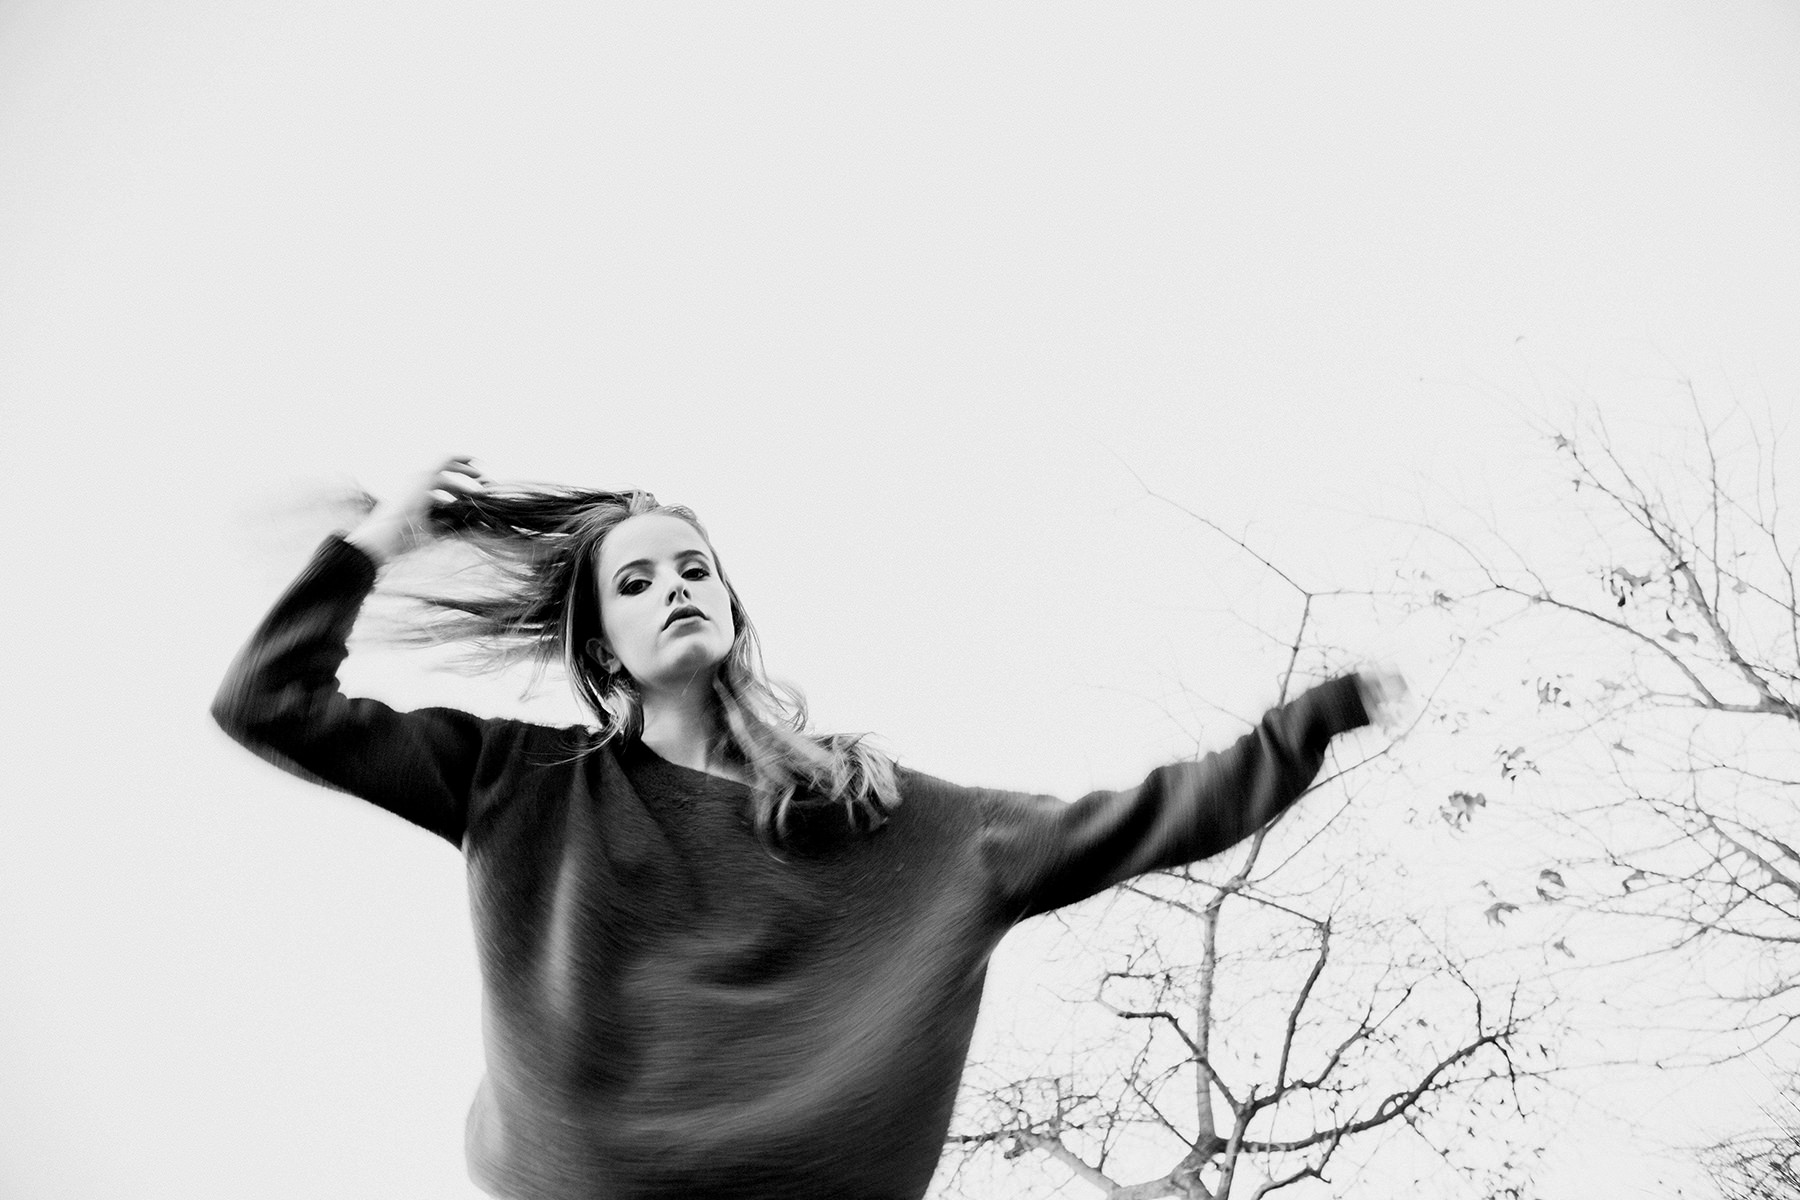 Blurry photo of beautiful female model swishing her hair and arms whilst staring down at camera in front of dry winter trees.